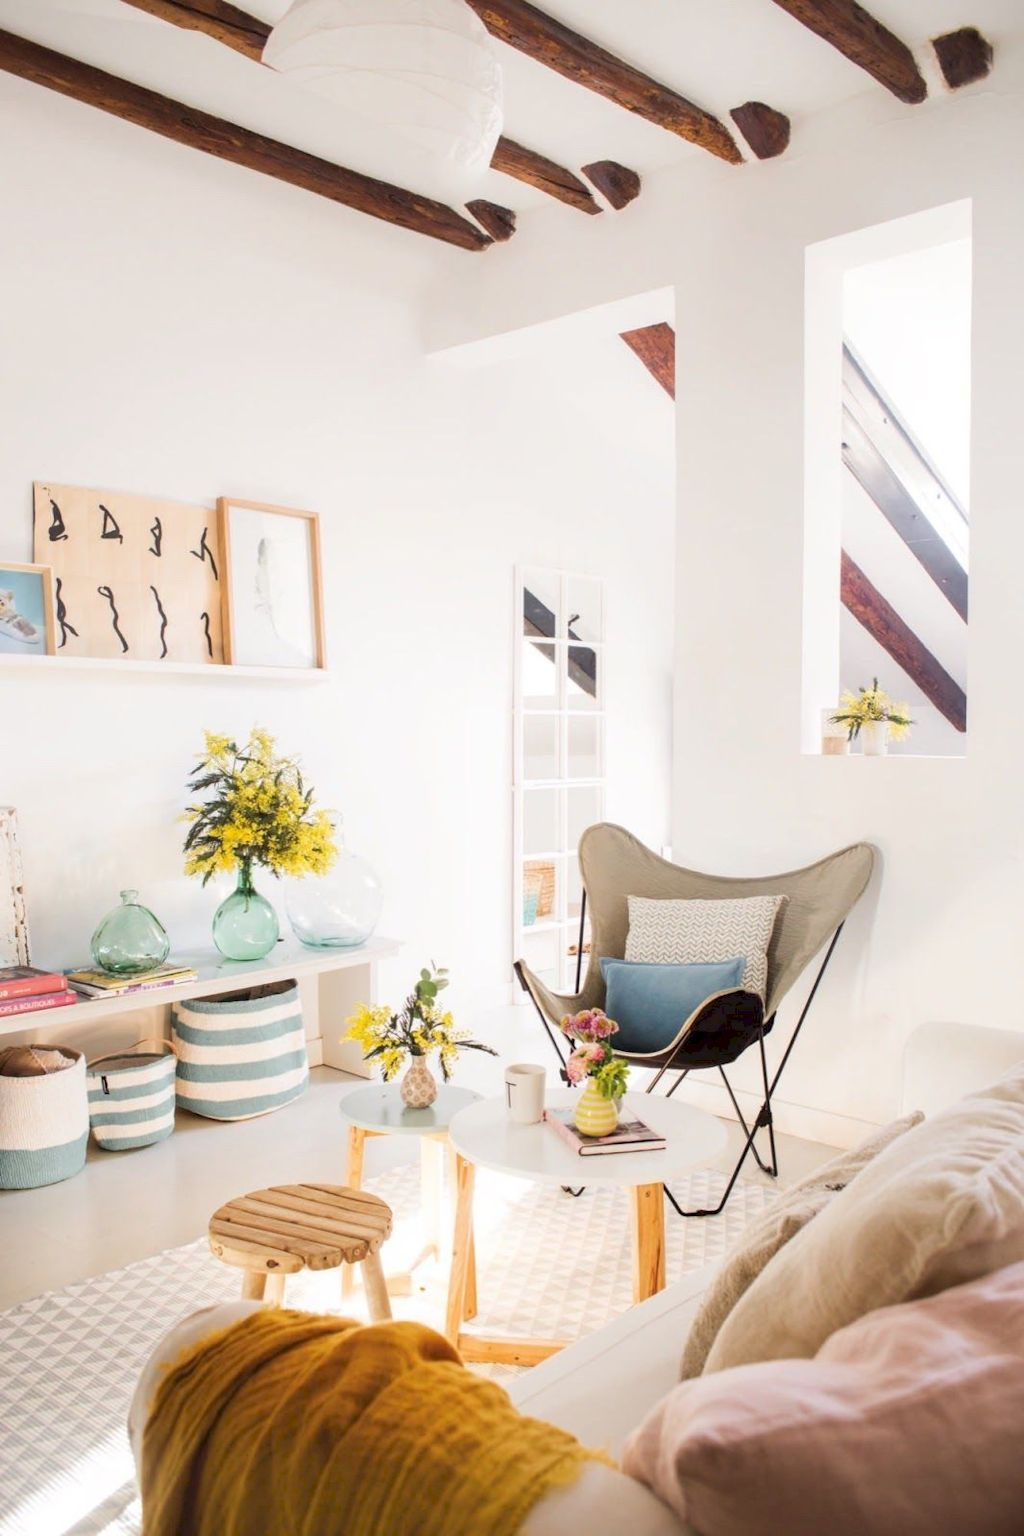 Minimalist living room update inspired by cottage living area showing a natural characteristic of beach style home Image 42